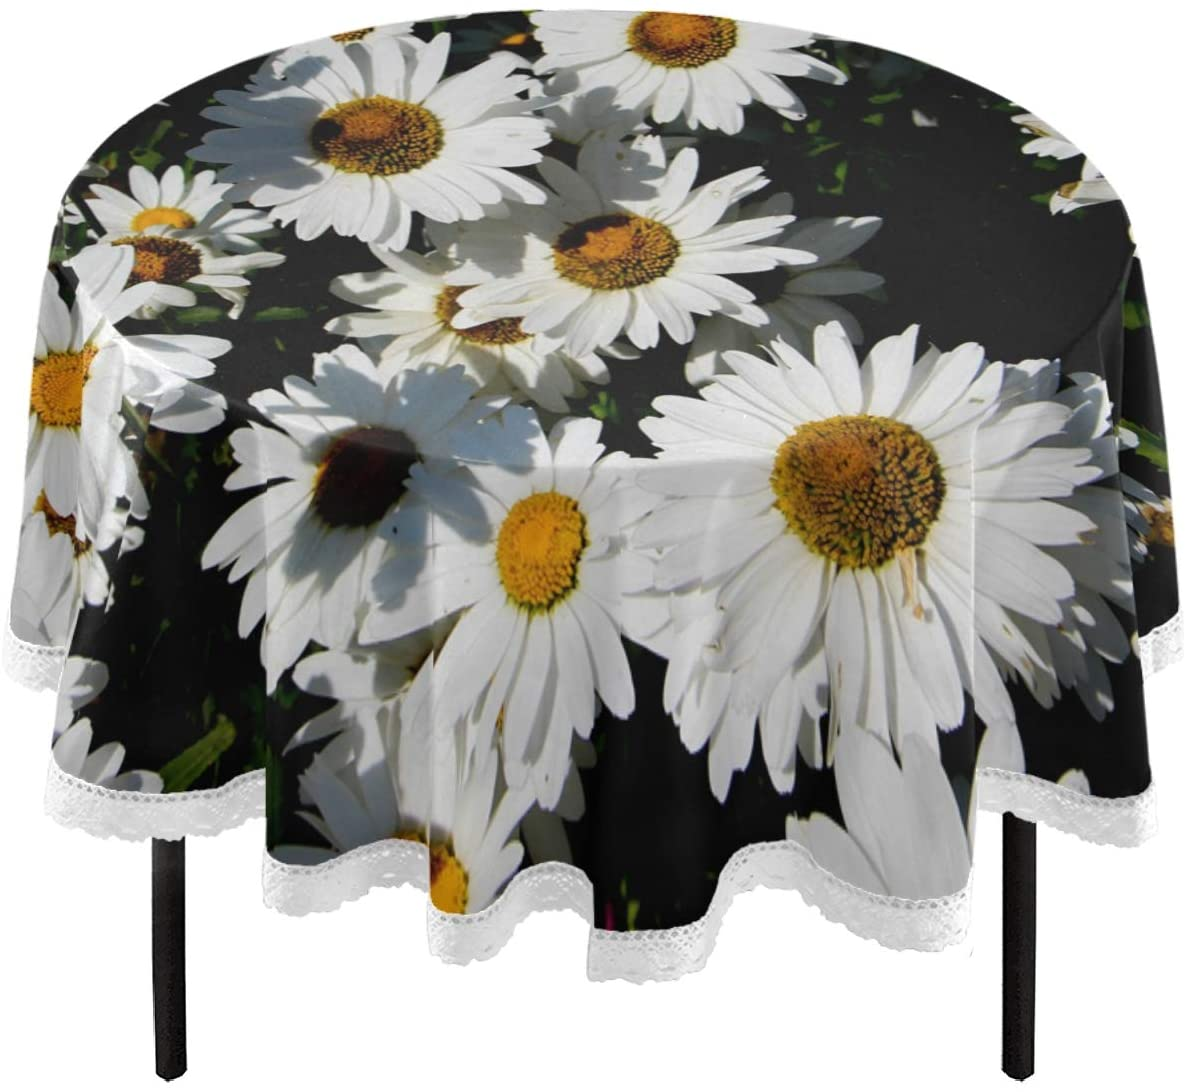 Oarencol Beautiful Sunflower 3D Floral Summer Round Tablecloth 60 Inch Table Cover Washable Polyester Table Cloth for Buffet Party Dinner Picnic